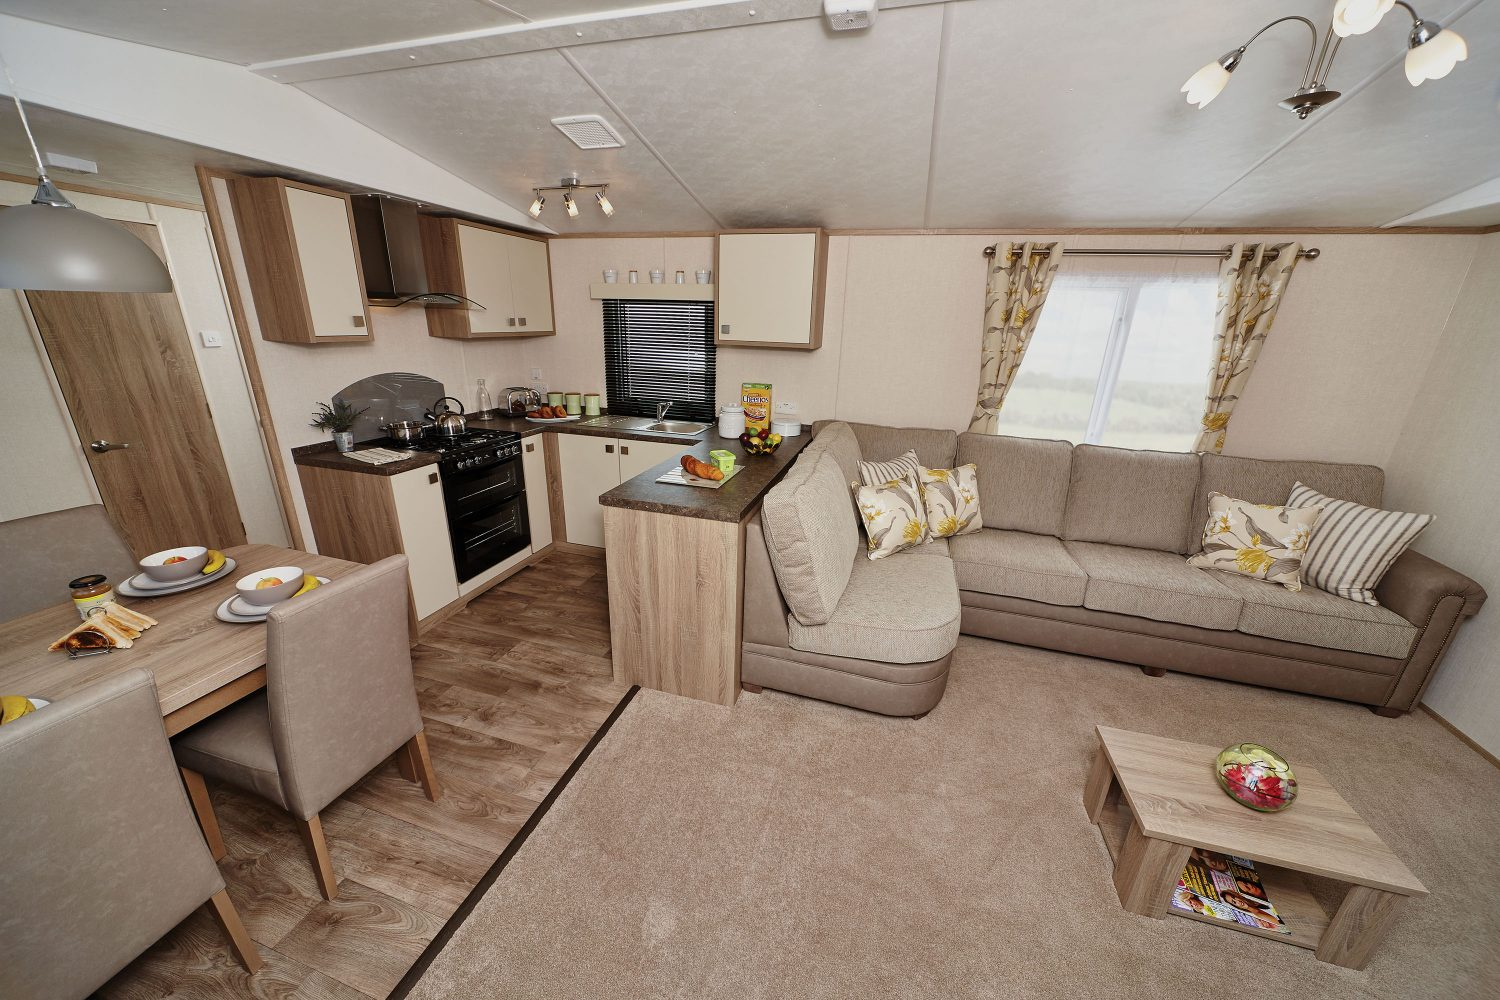 Dorset Caravans for Sale